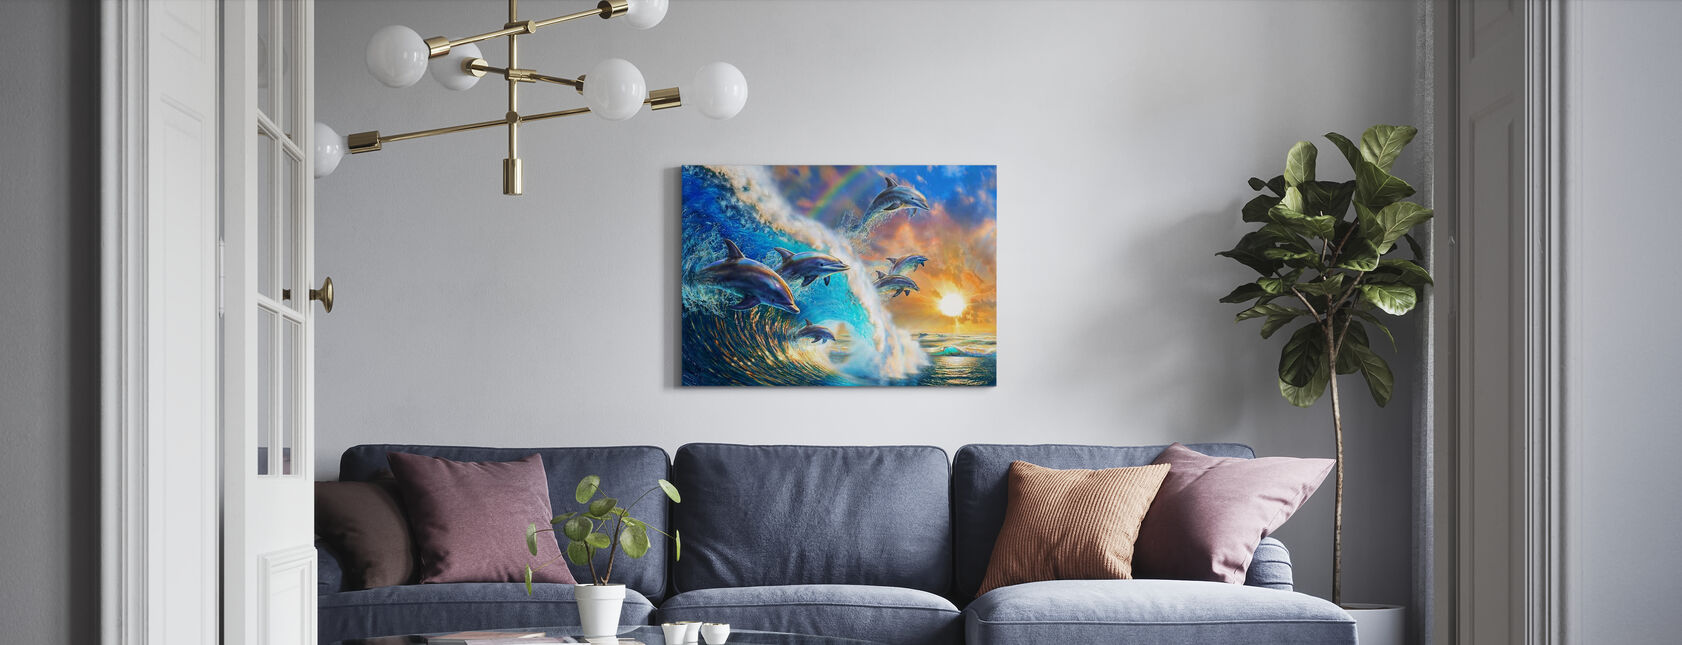 Dolphin Wave - Canvas print - Living Room